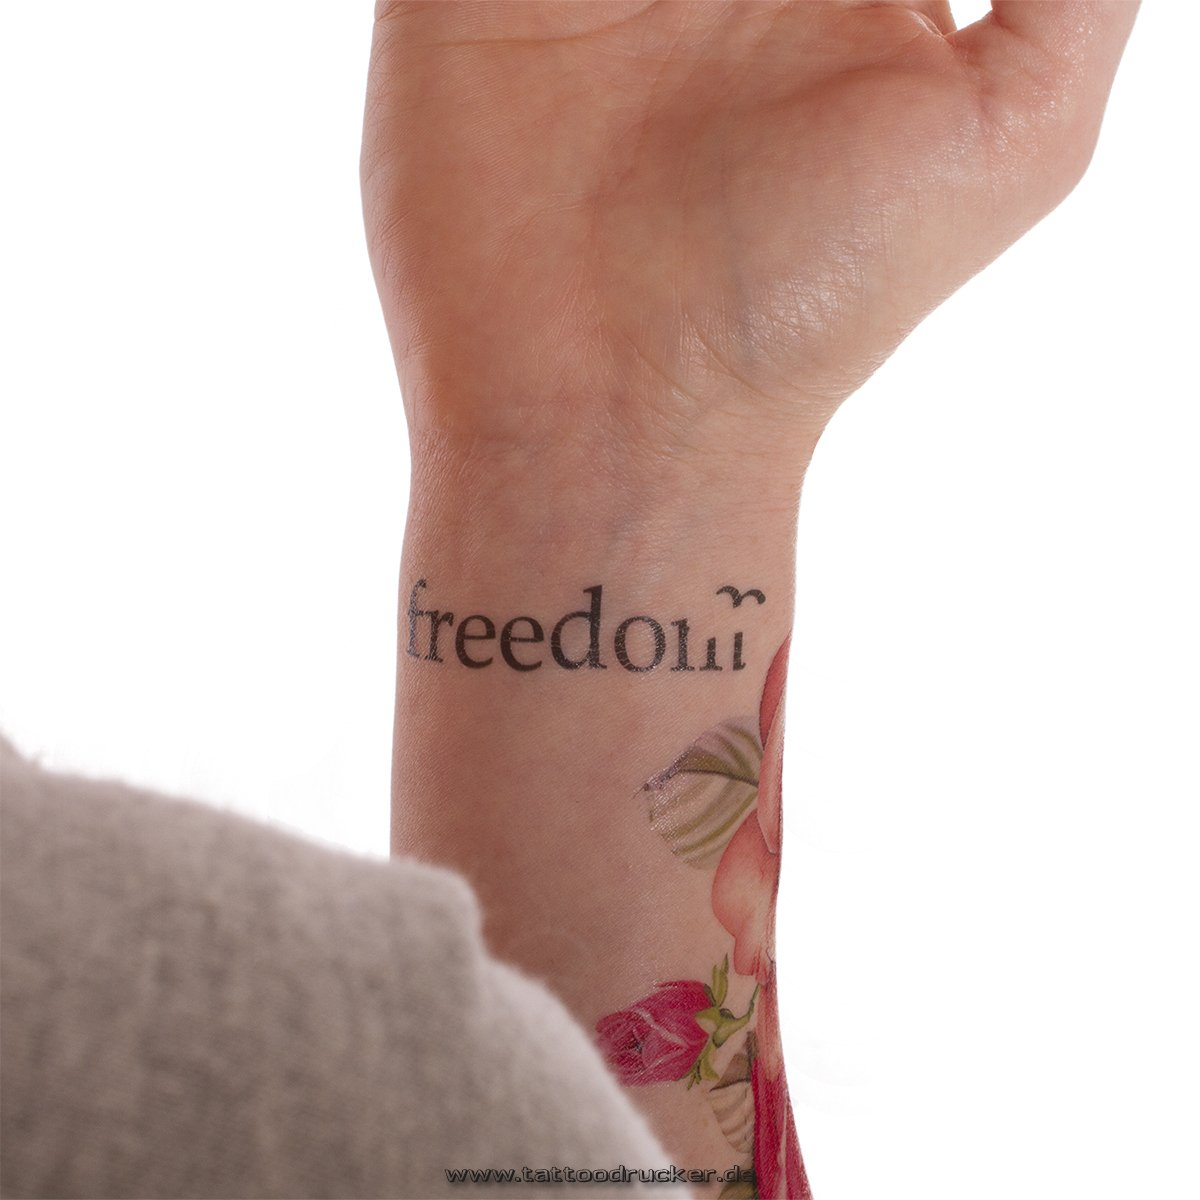 8605cf8a1 Amazon.com: 5 x Freedom Tattoo lettering in black (5): Home & Kitchen